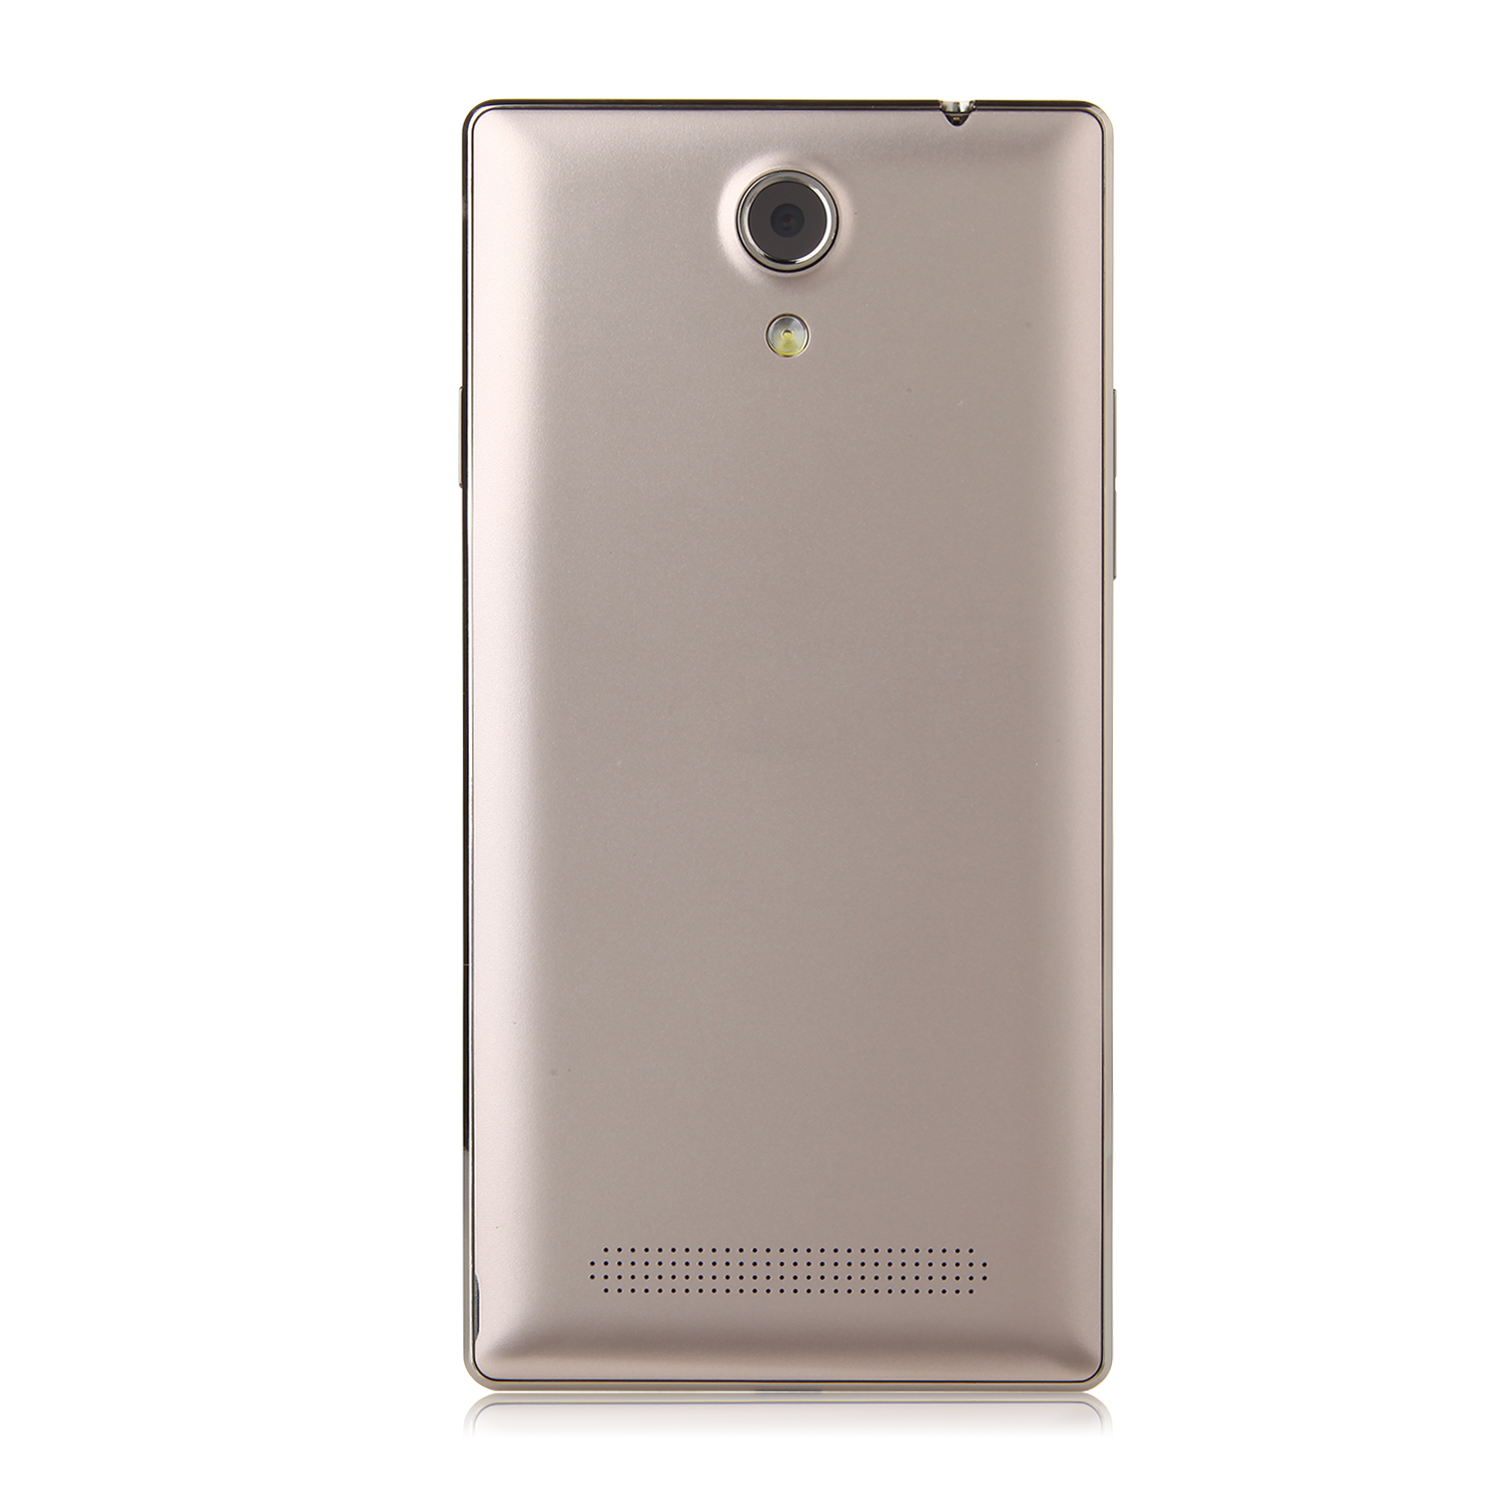 HOTWAV Hero V5 Smartphone Android 4.4 MTK6582 Quad Core Dual Cameras 5.0 Inch Golden